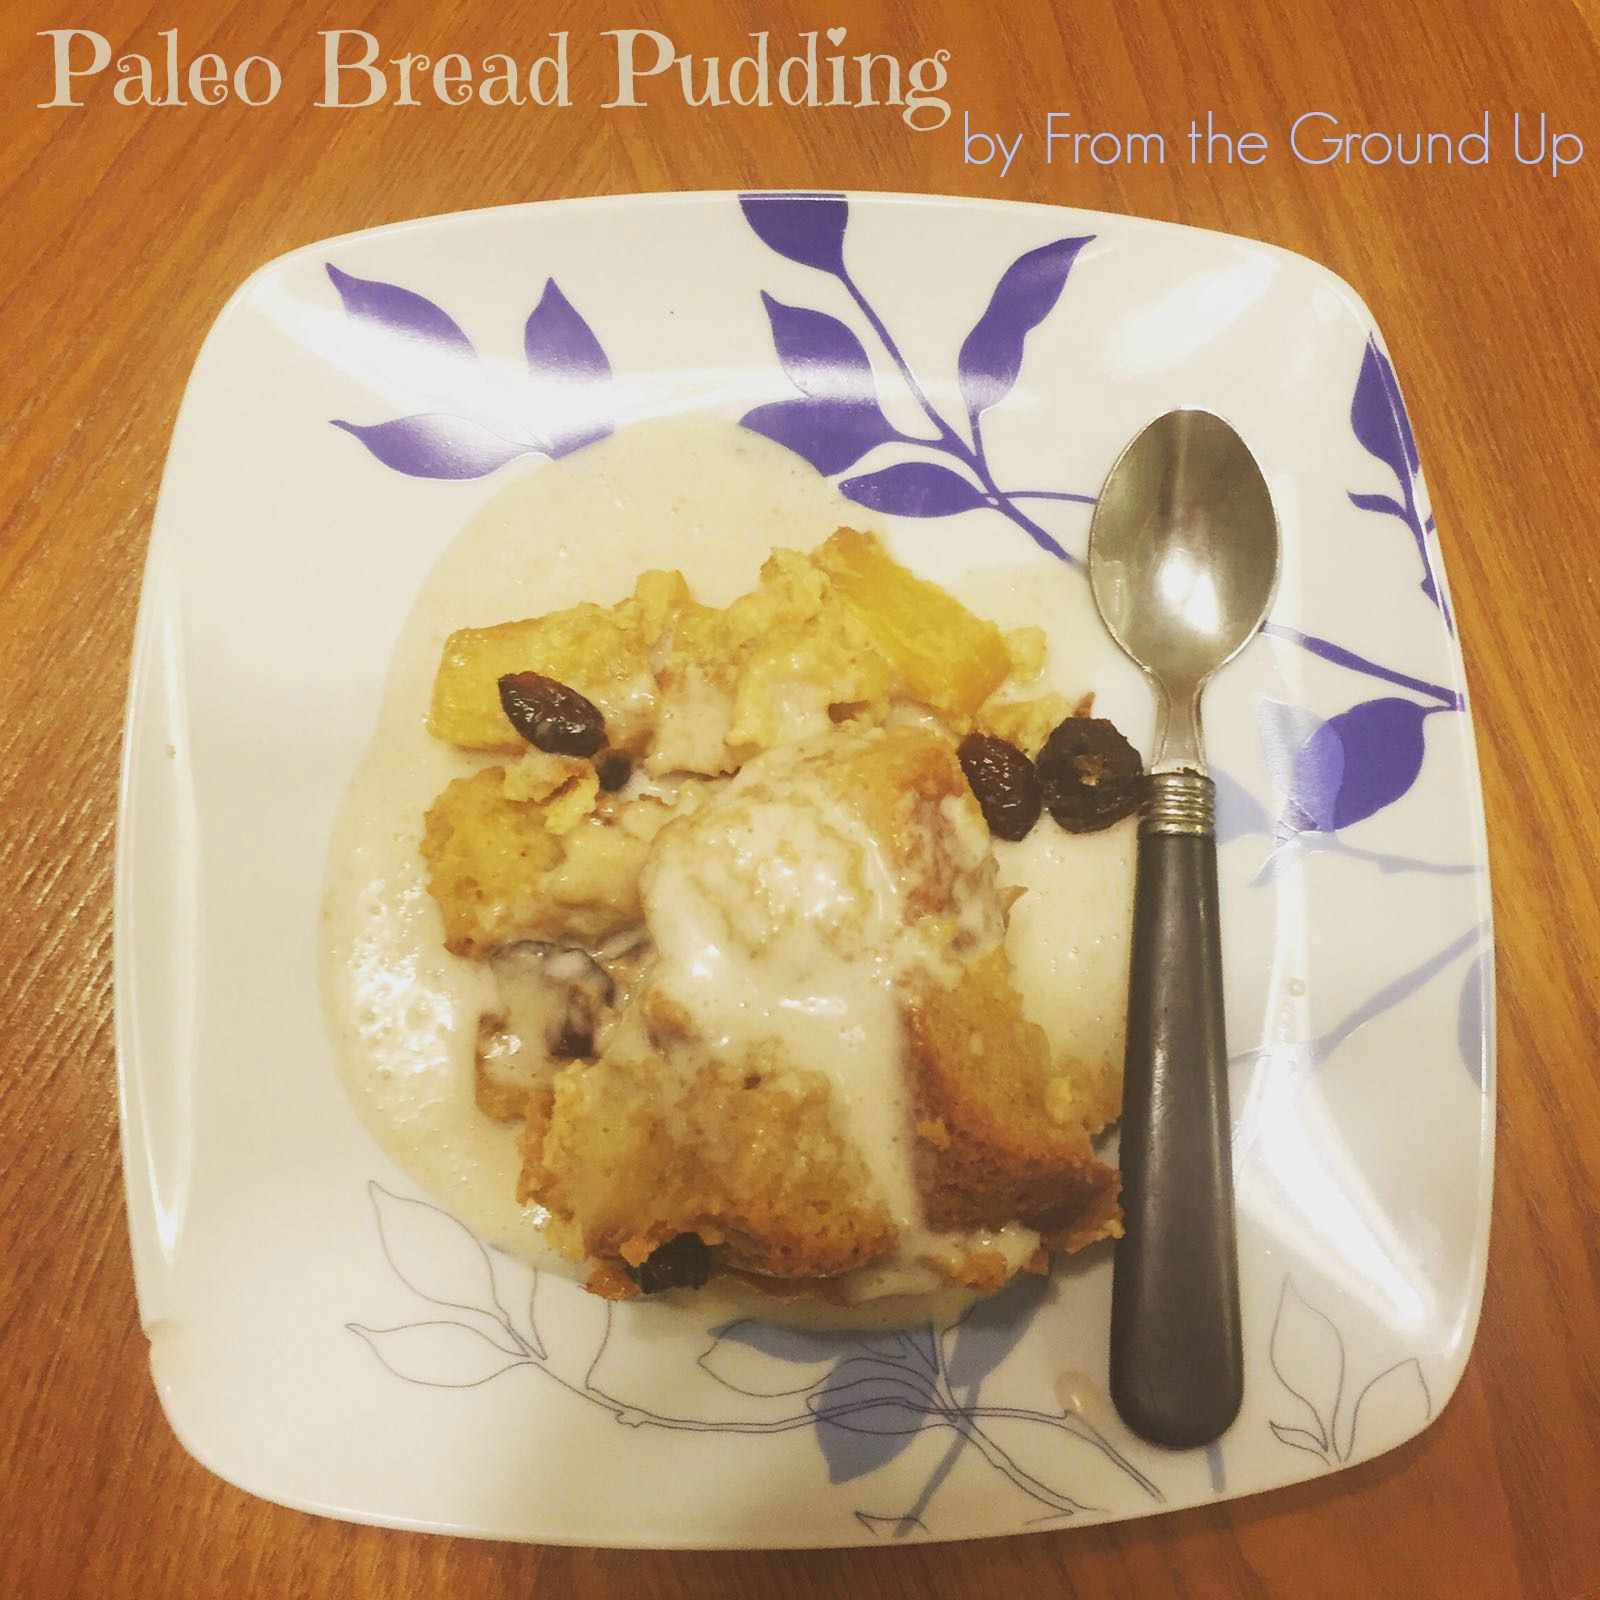 Paleo Bread Pudding by From the Ground Up - Made Well